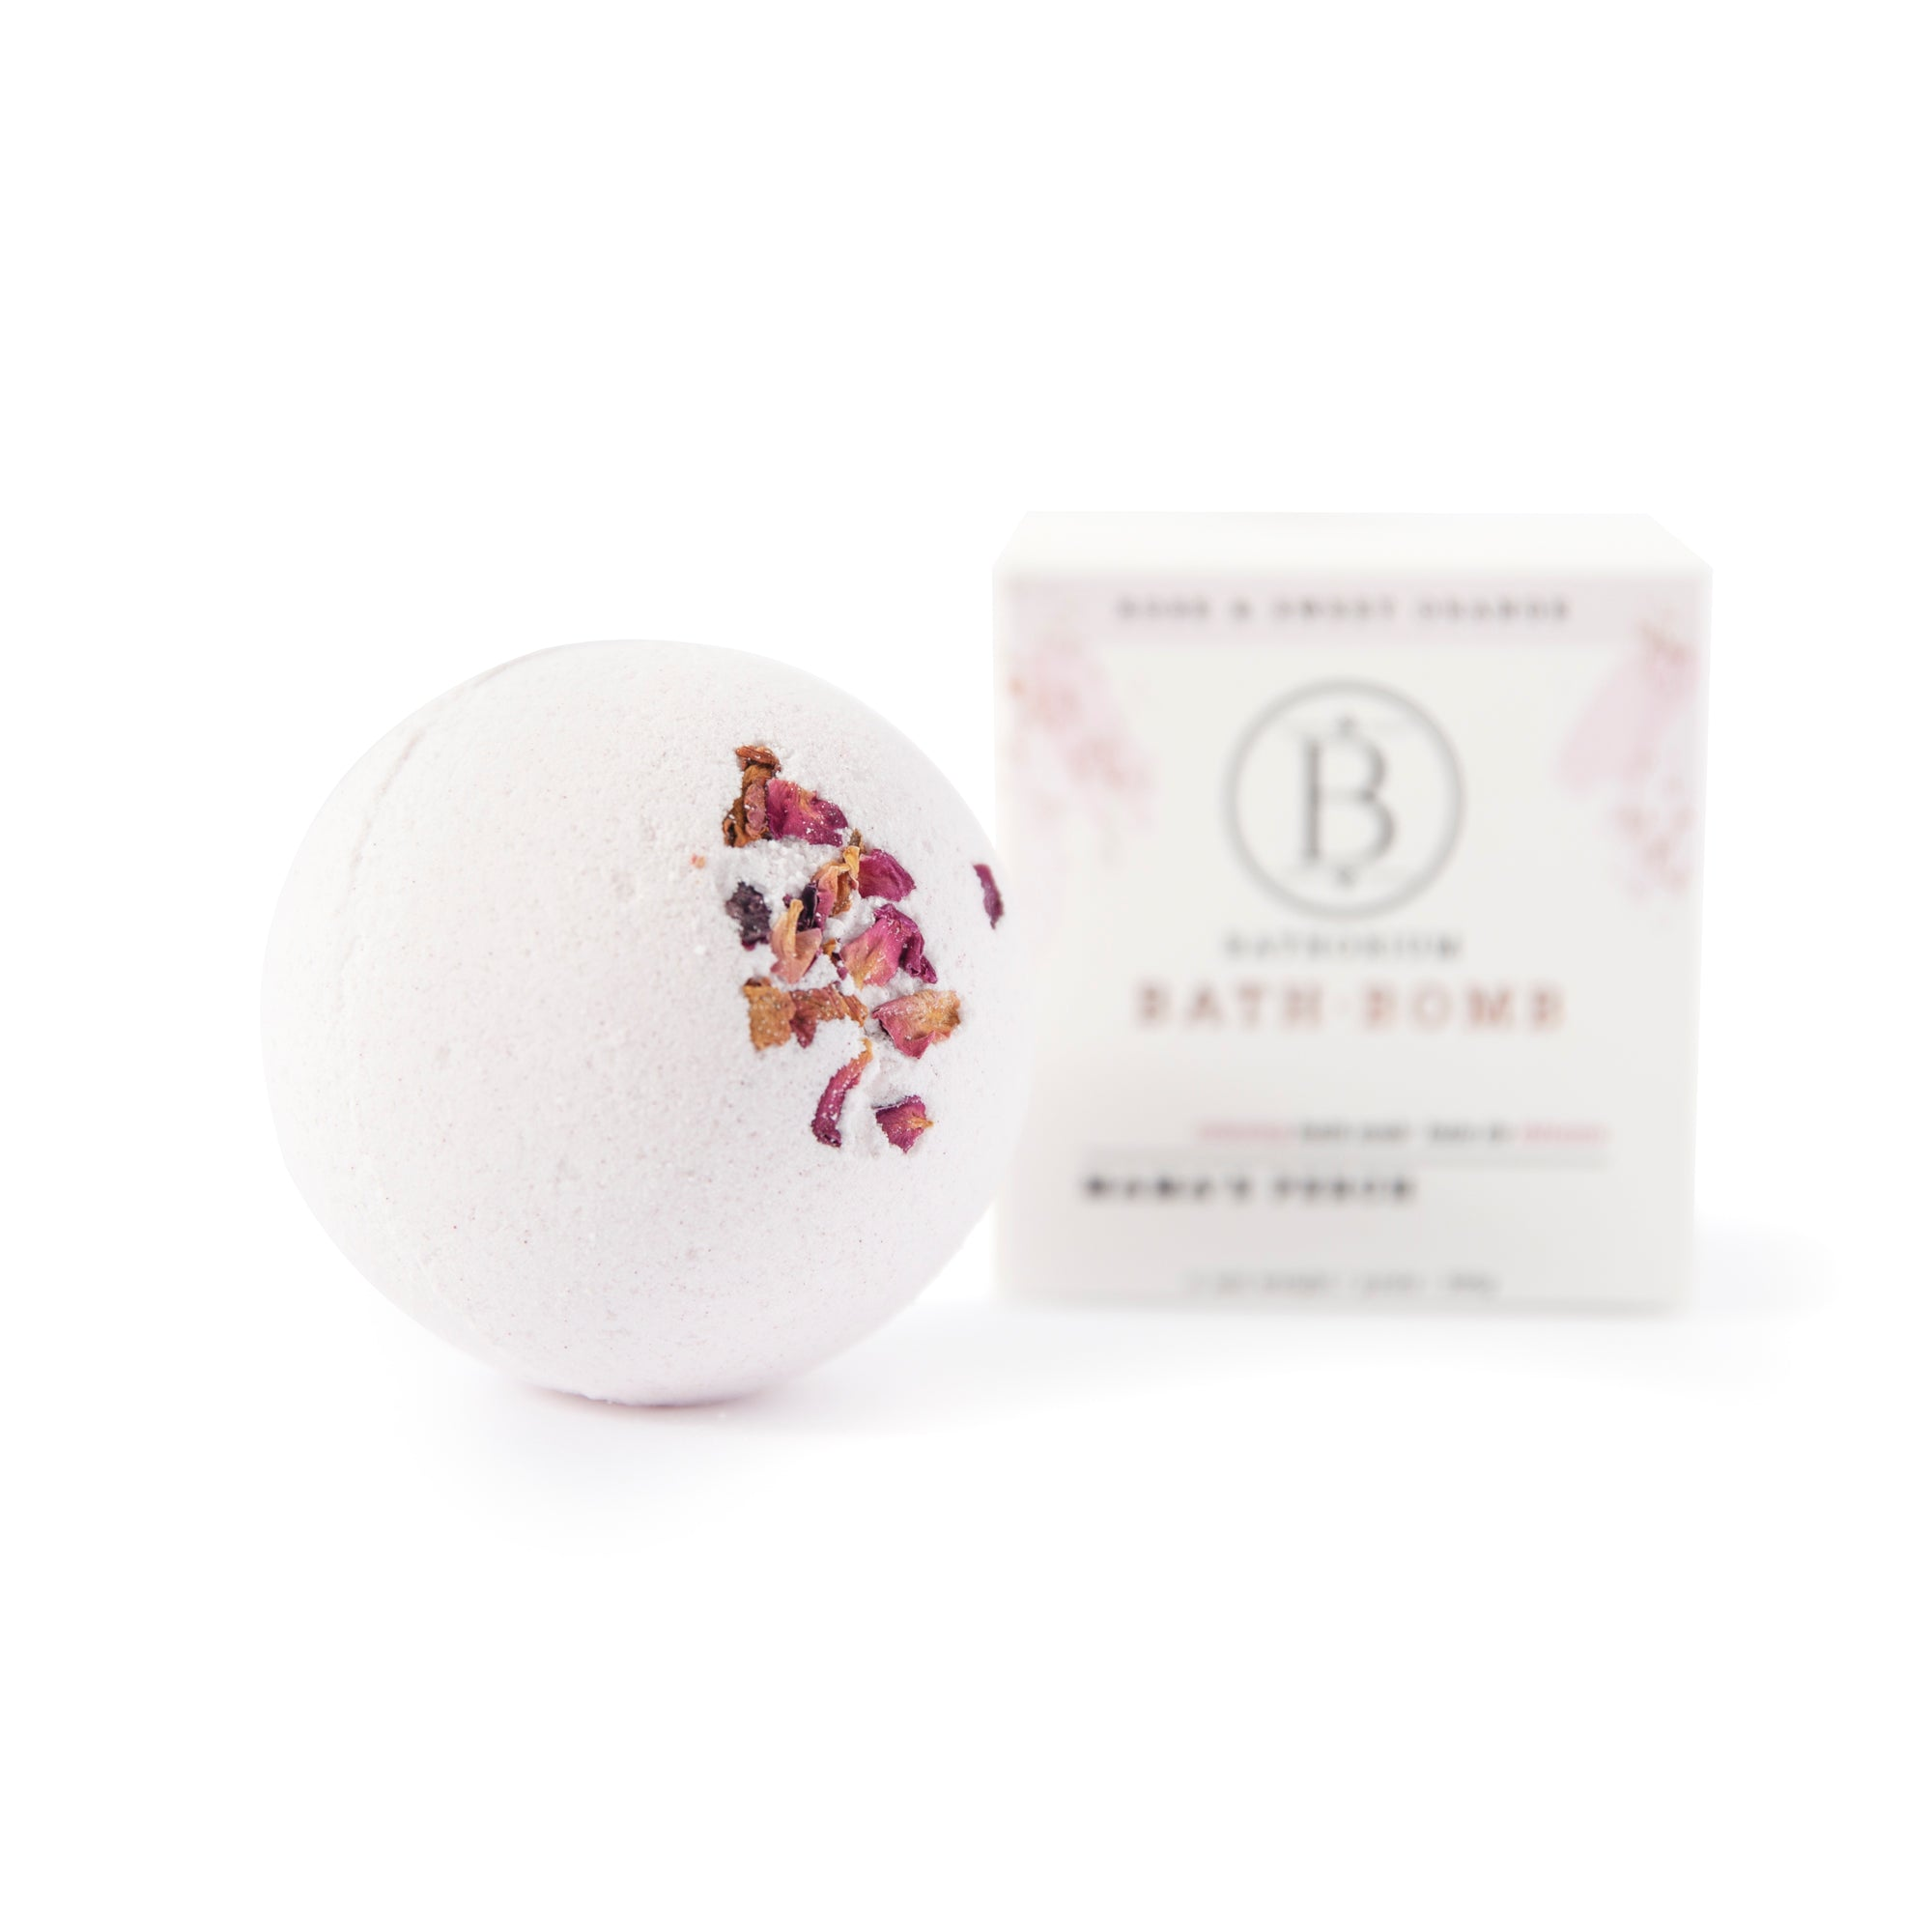 RELAXING FLORAL BATH BOMB - MAMA'S PERCH